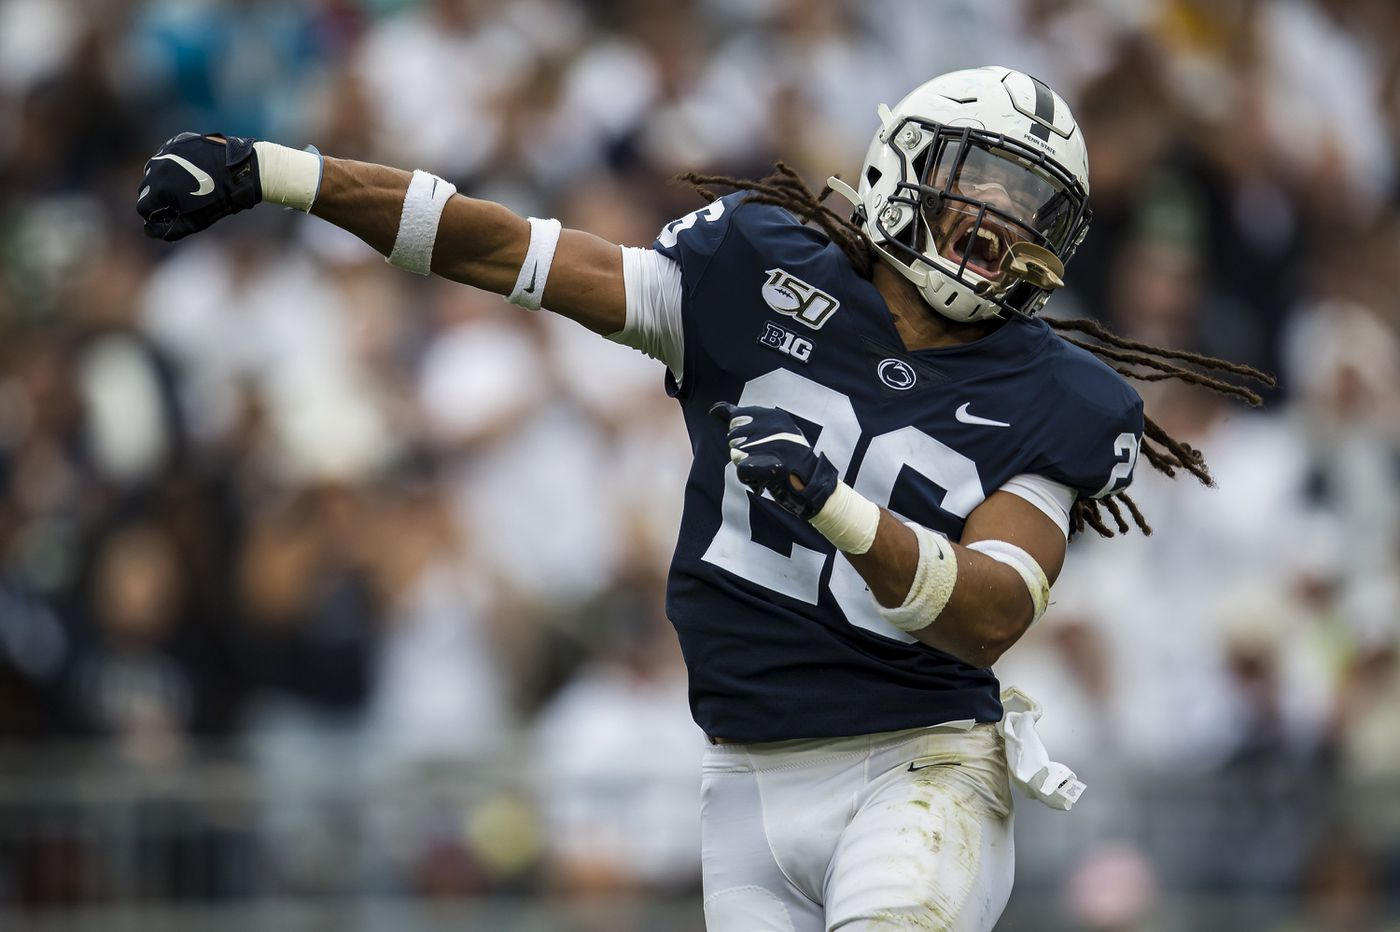 Penn State-Iowa football: Start time, how to watch and stream